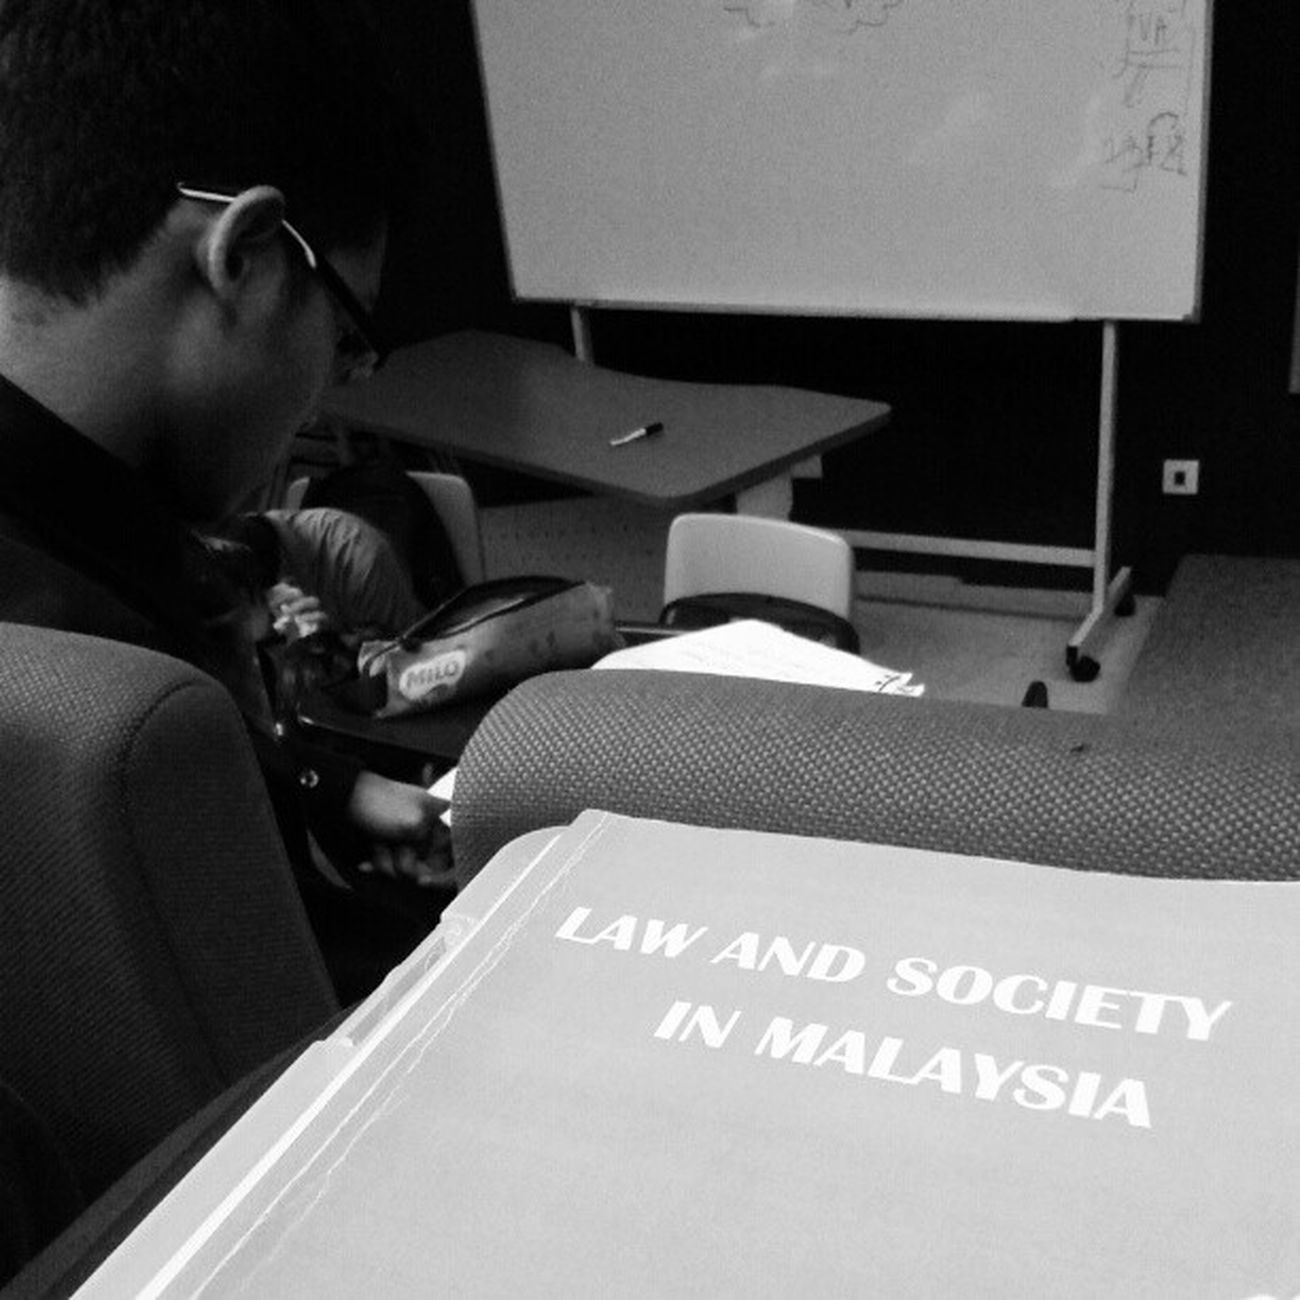 Kuliah in the early morning . Lawstudent Lawyertobe Lawandsociety Syamim picoftoday blackandwhite morning usim tamhidi